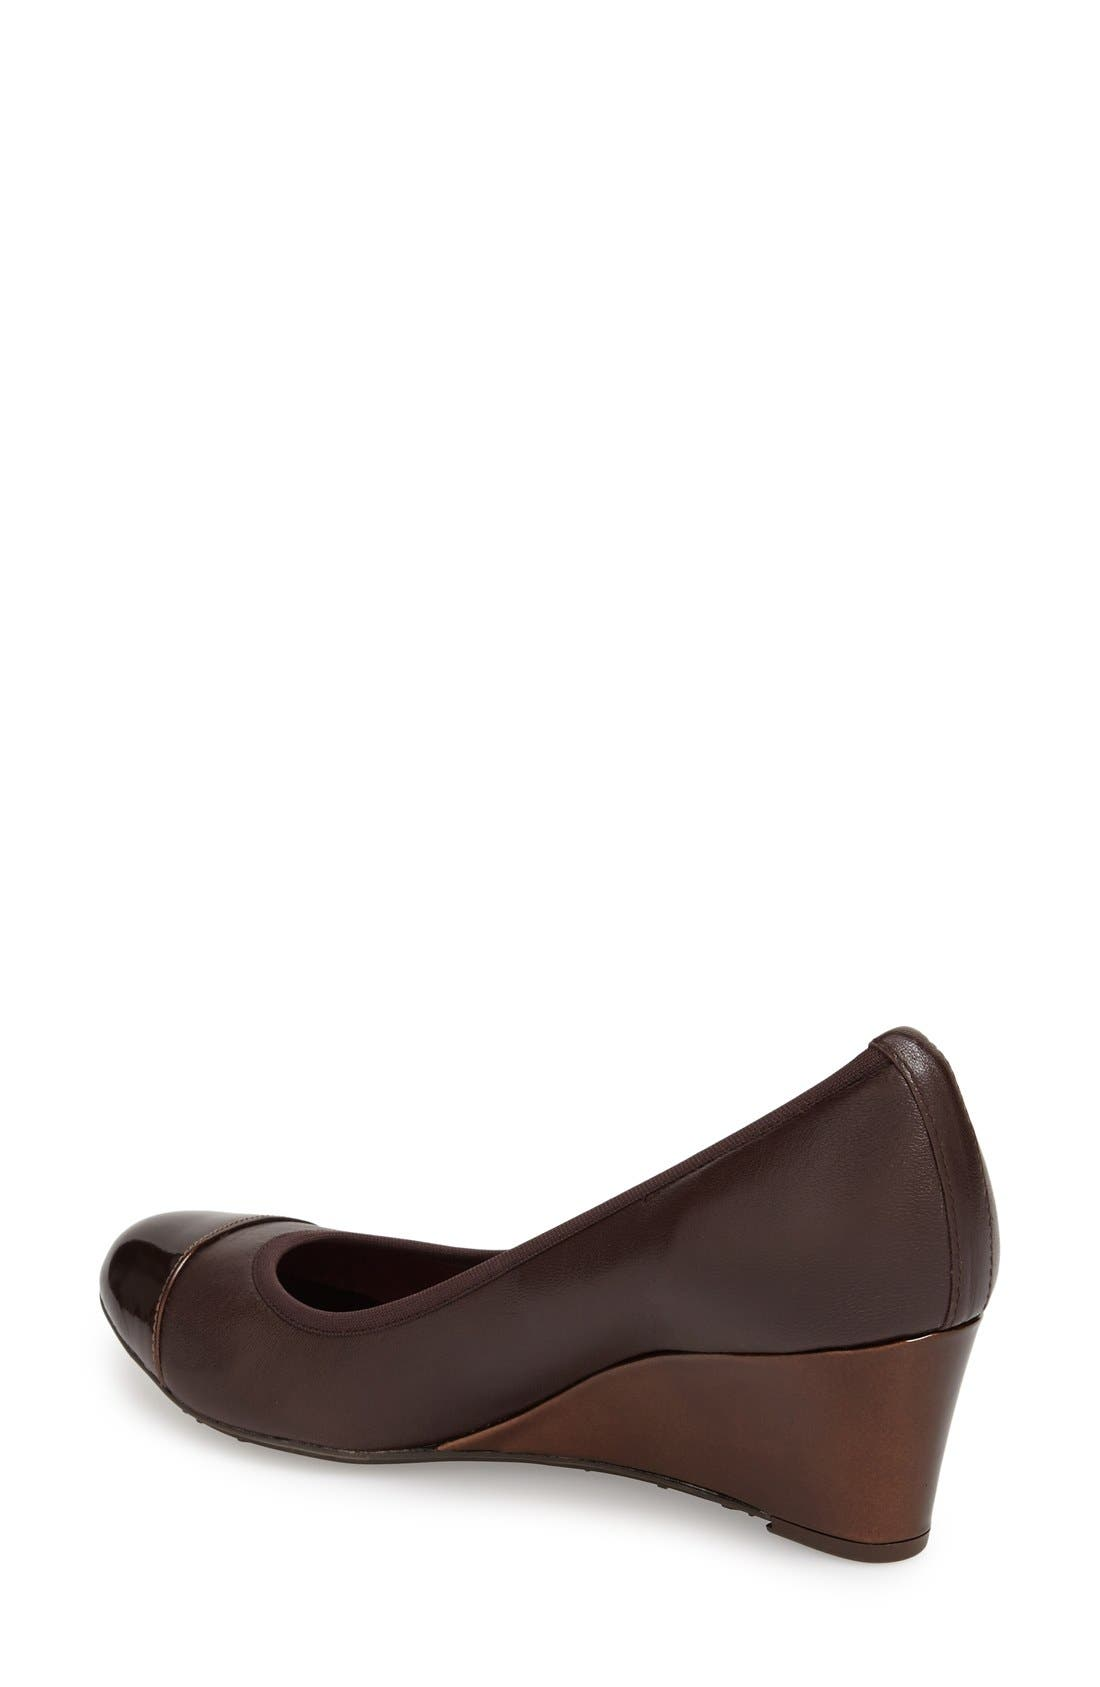 Alternate Image 2  - French Sole 'Juggle' Wedge Pump